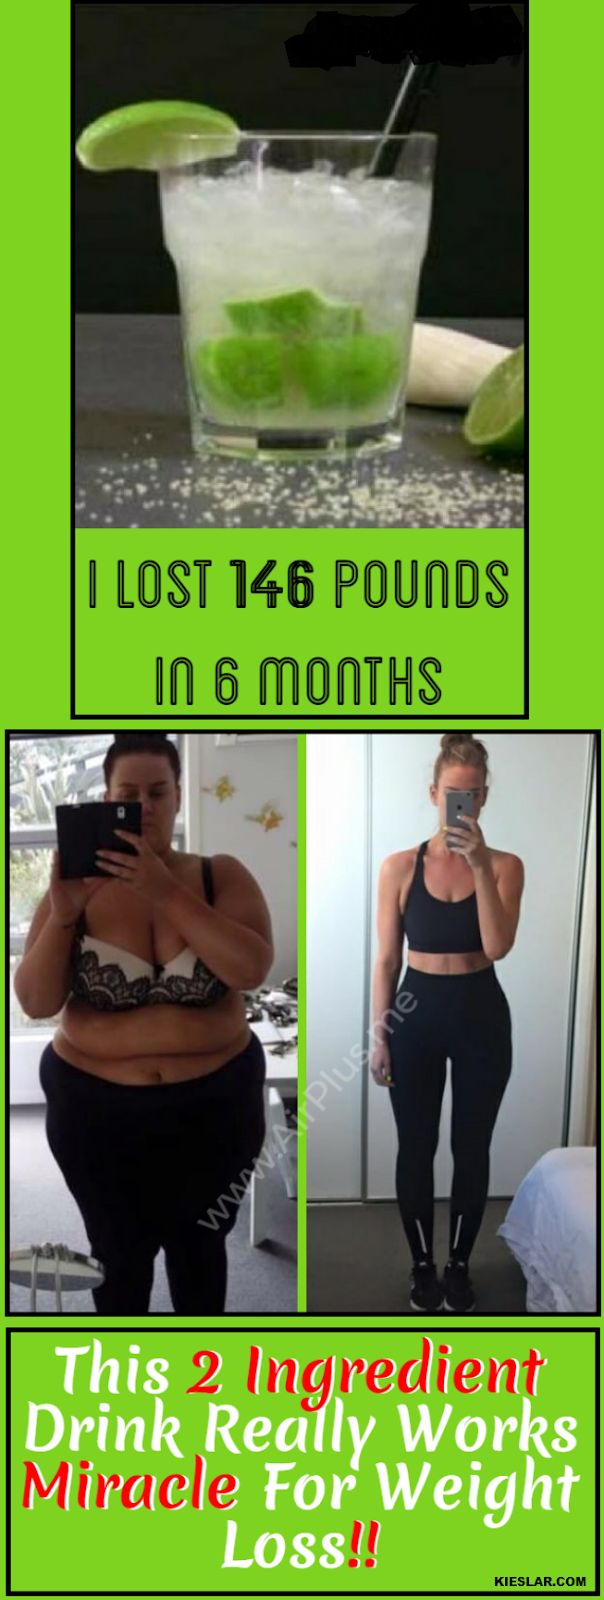 I Lost 146 Pounds In 6 Months, This 2 Ingredient Drink Really Works Miracle For Weight Loss!!